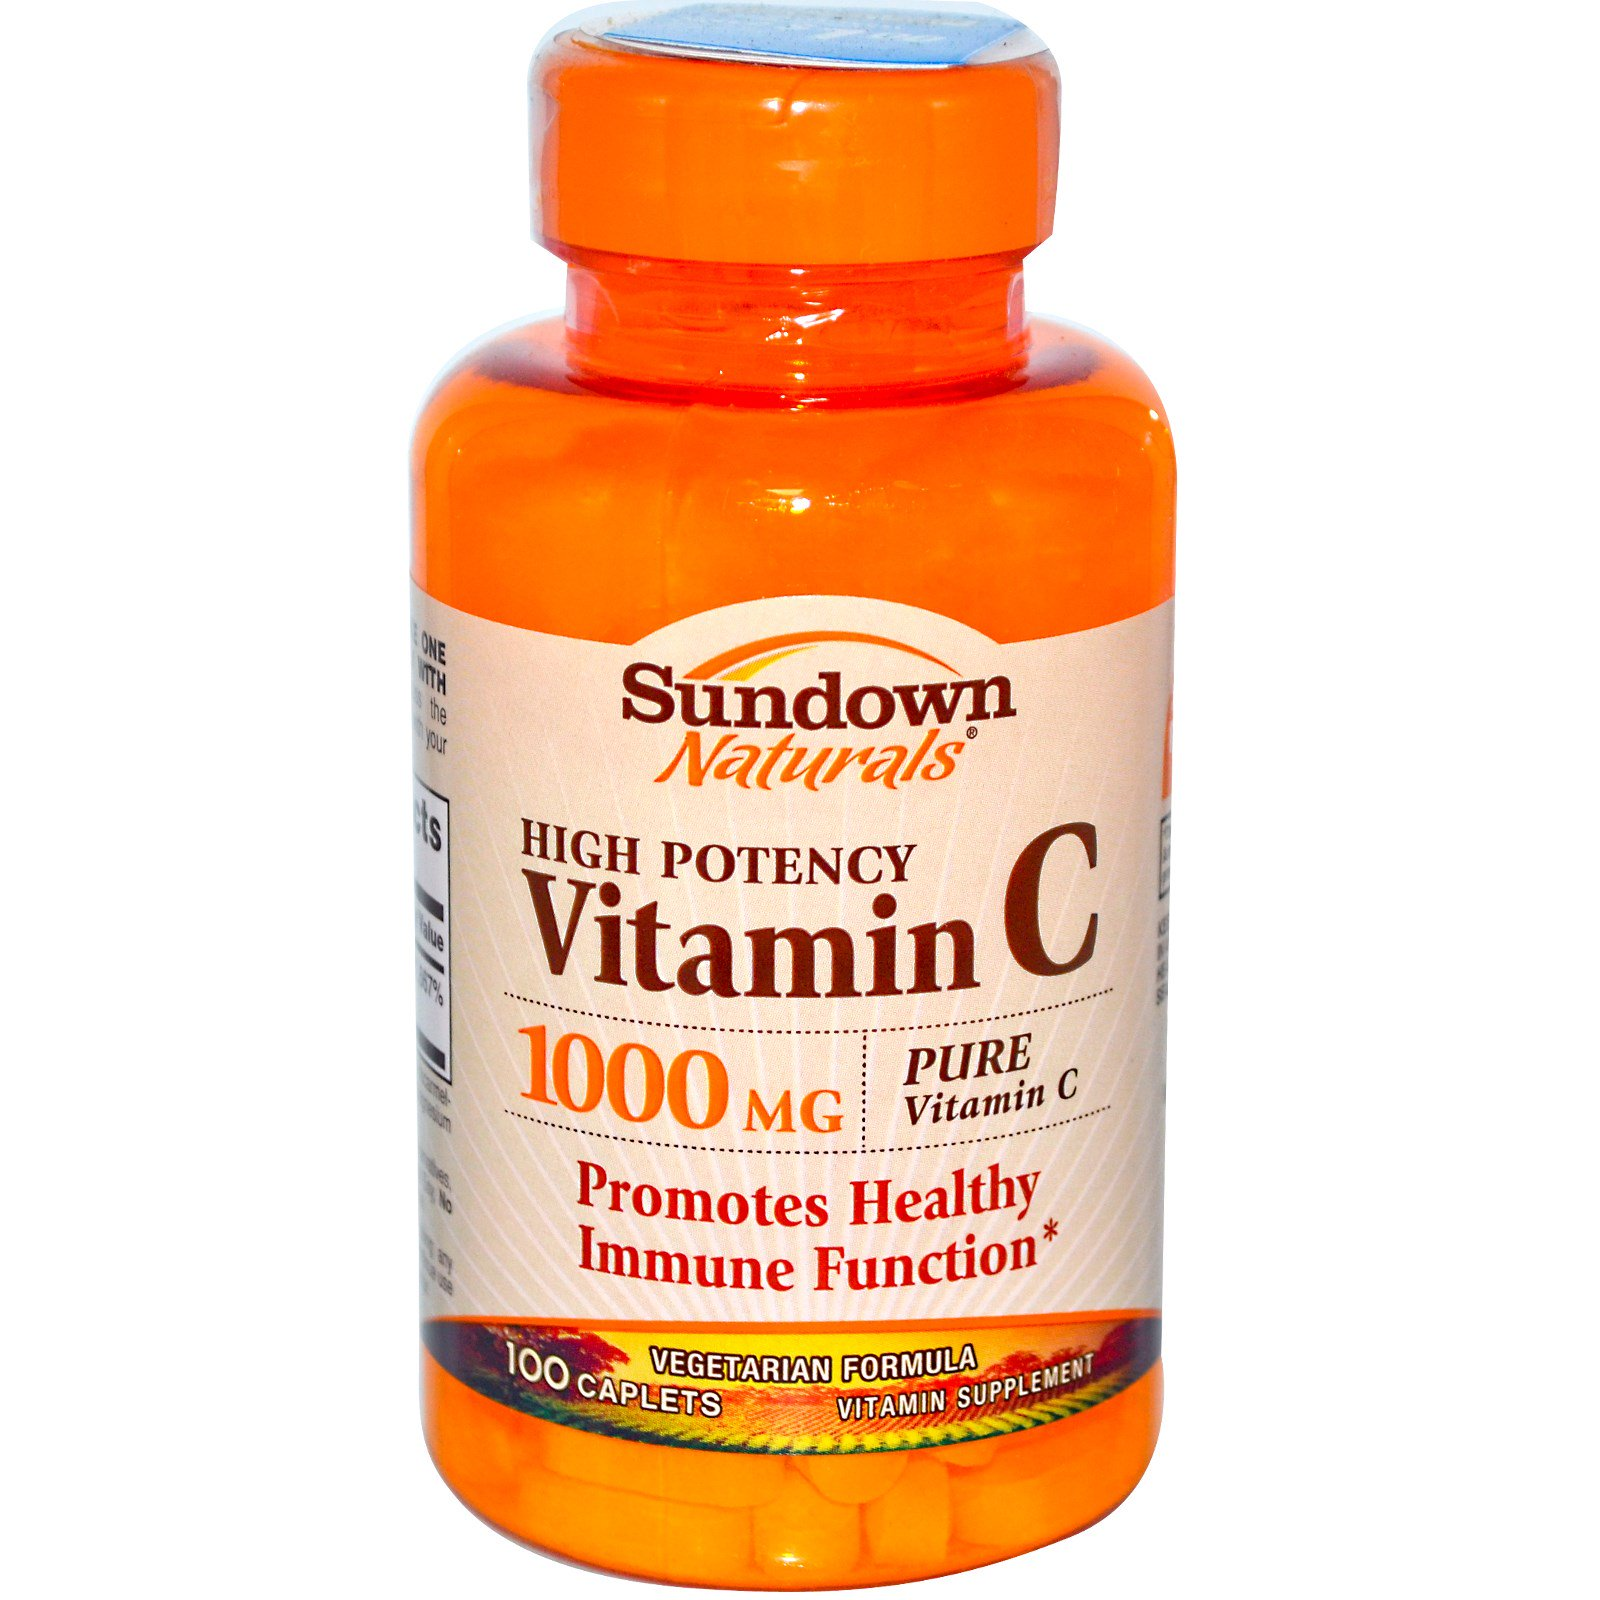 Sundown Naturals Vitamin C Reviews